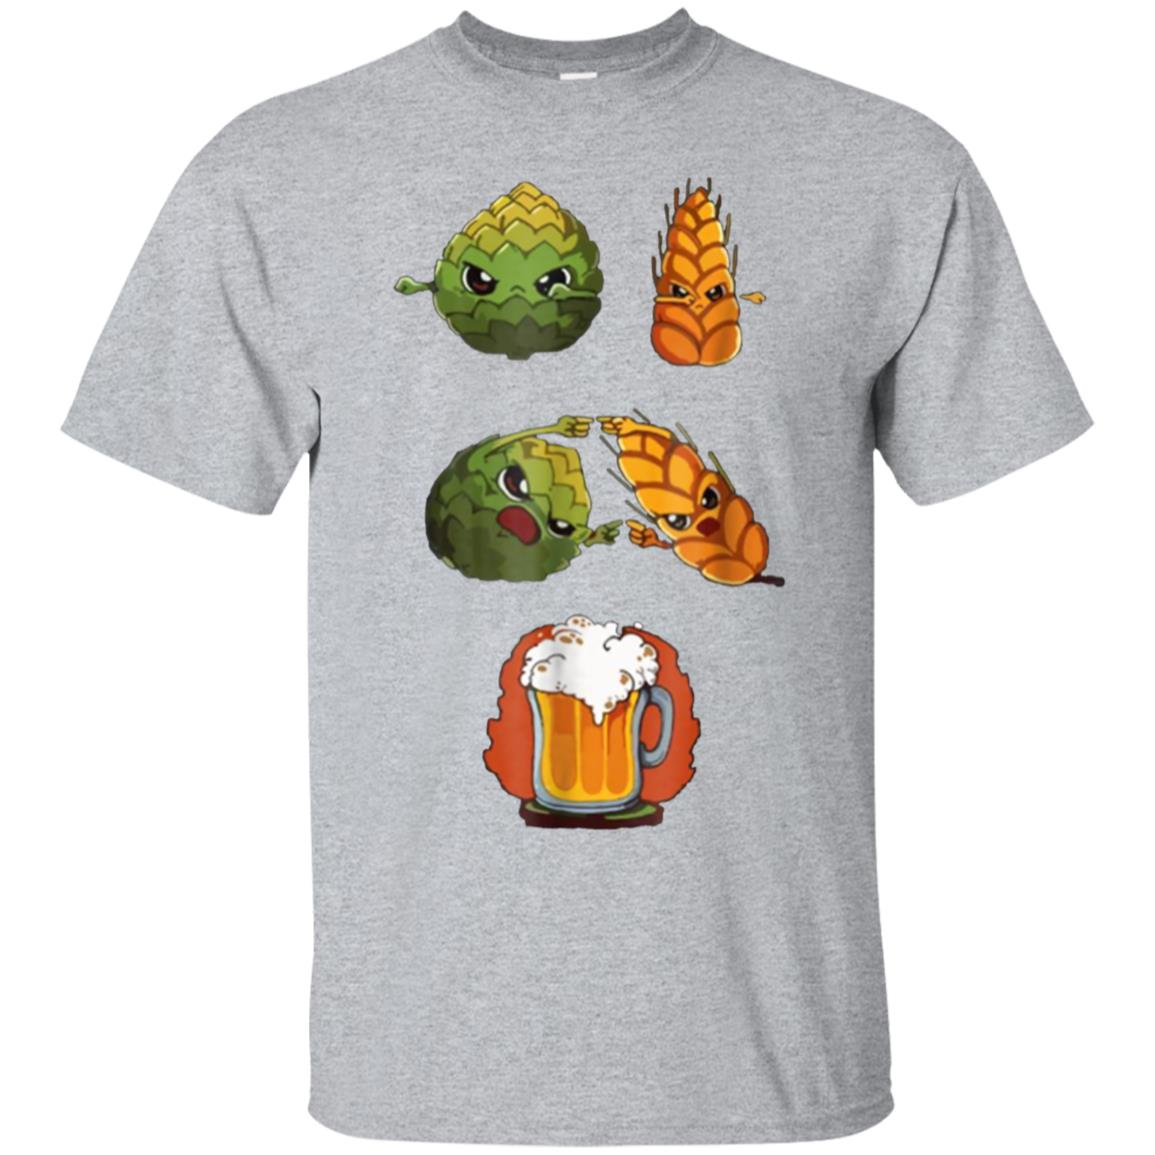 Funny Beer Fusion T-Shirt I Perfect Alcohol Drinkers Wear 99promocode